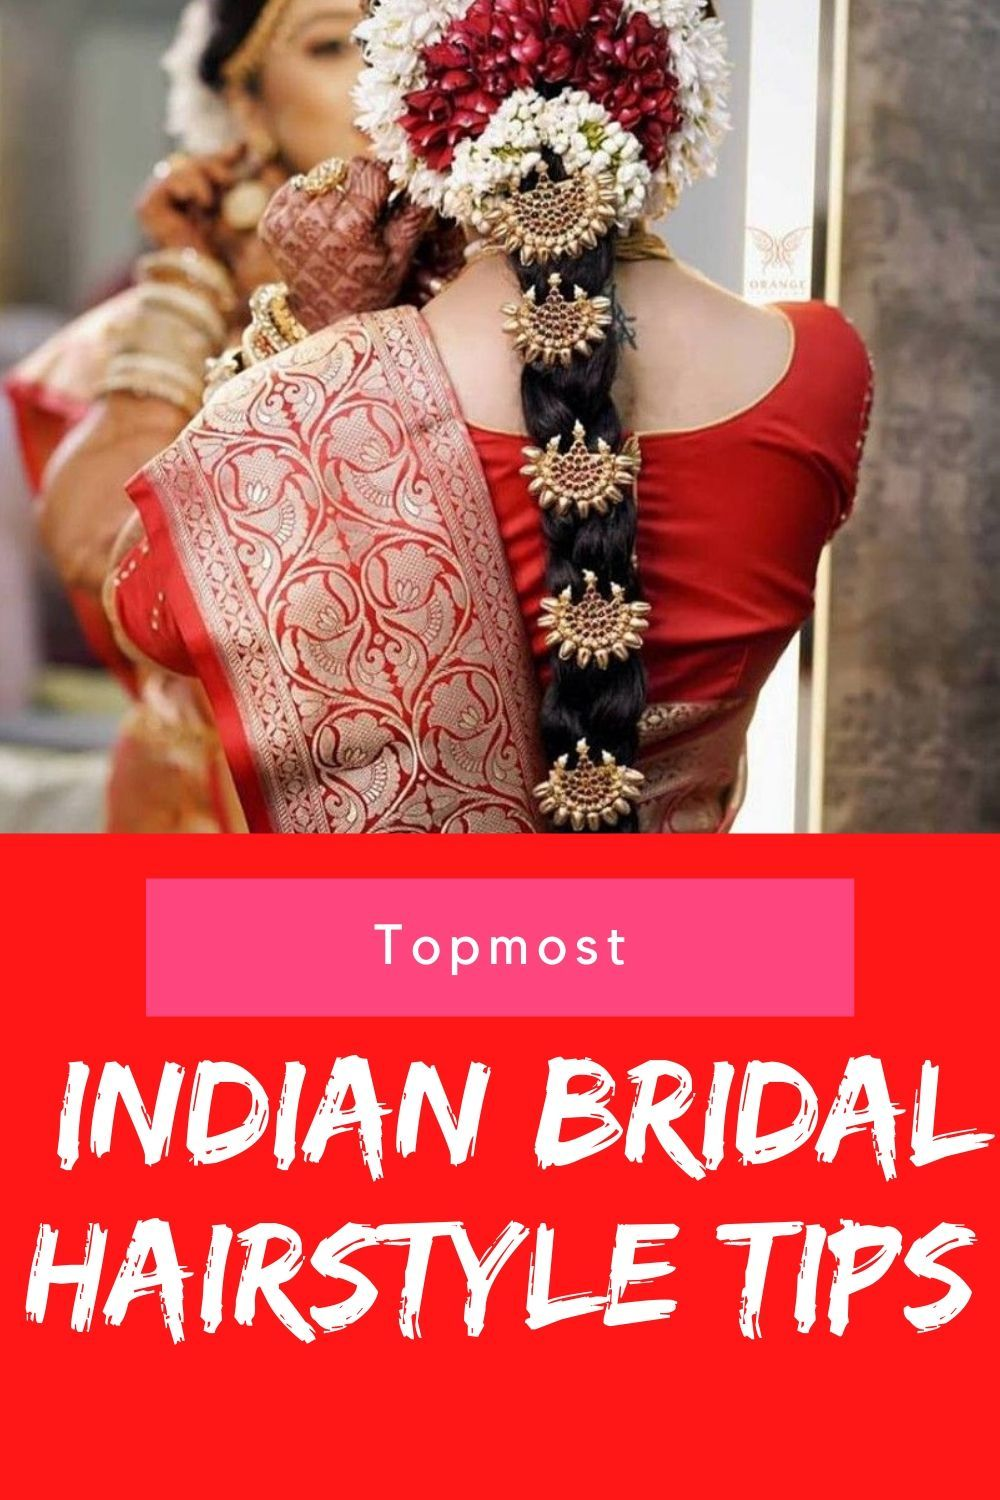 Topmost Indian Bridal Hairstyle Tips